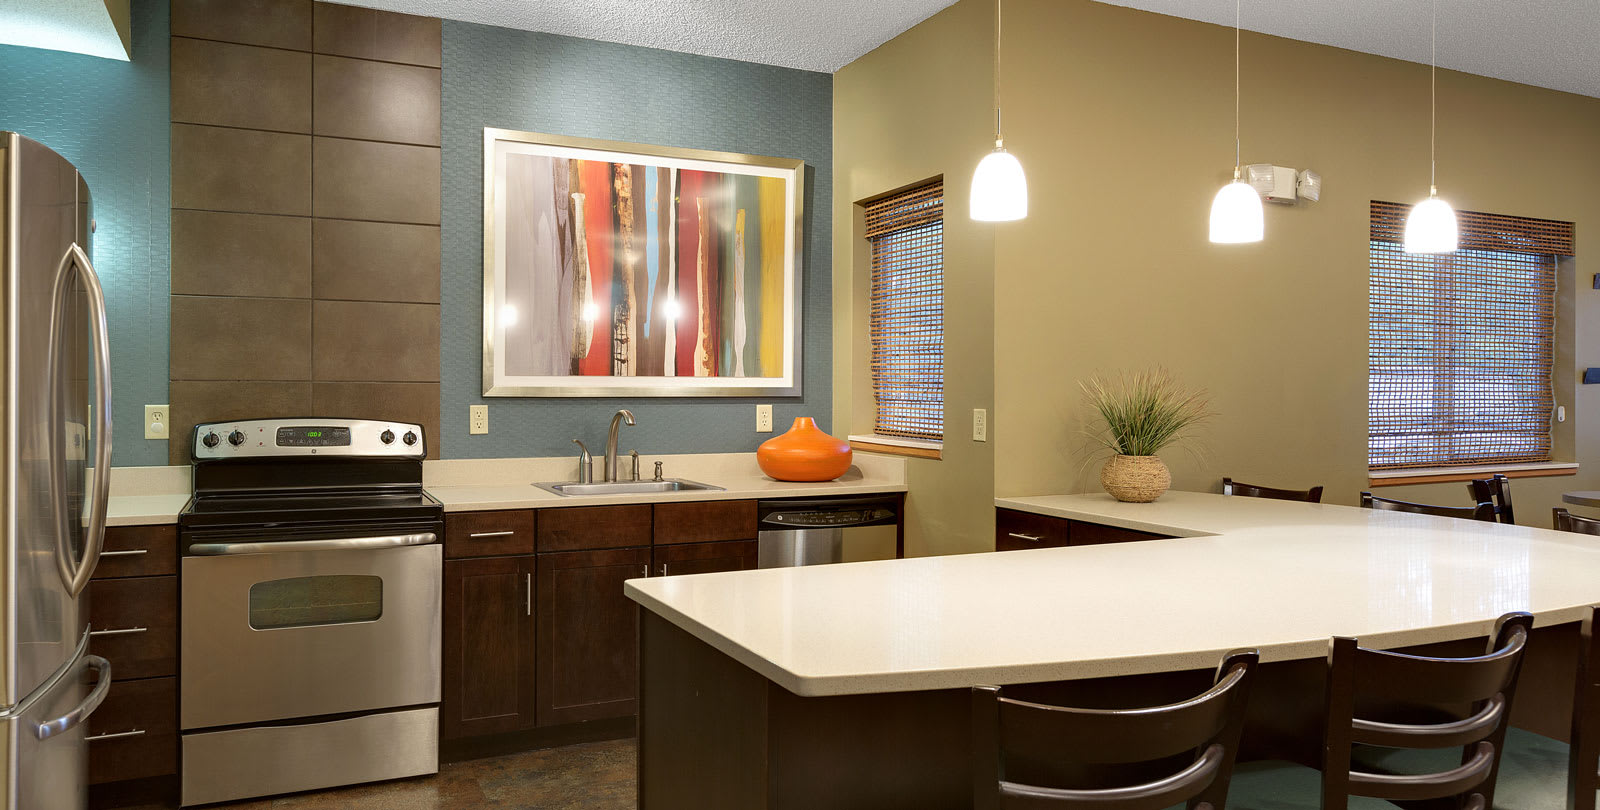 Shadow Hills Apartments in Plymouth, MN Community Room